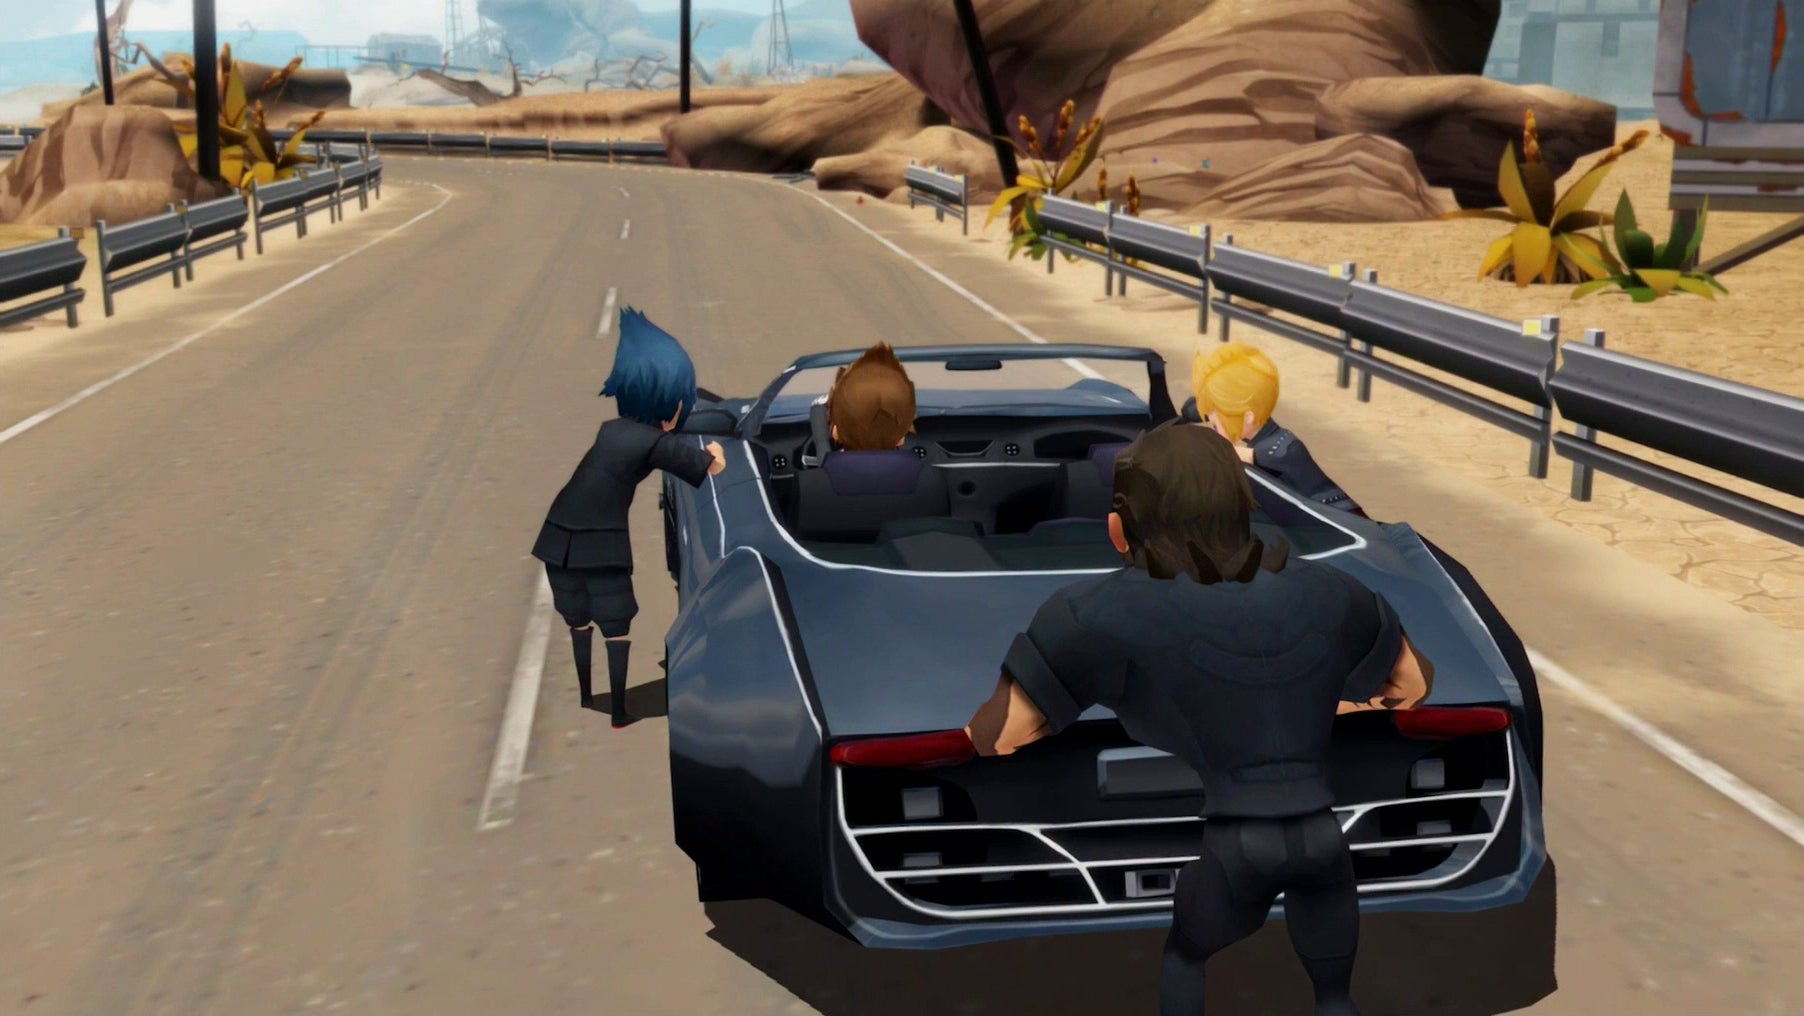 Final Fantasy 15's Director Wants You To Know He Can't Find A Switch